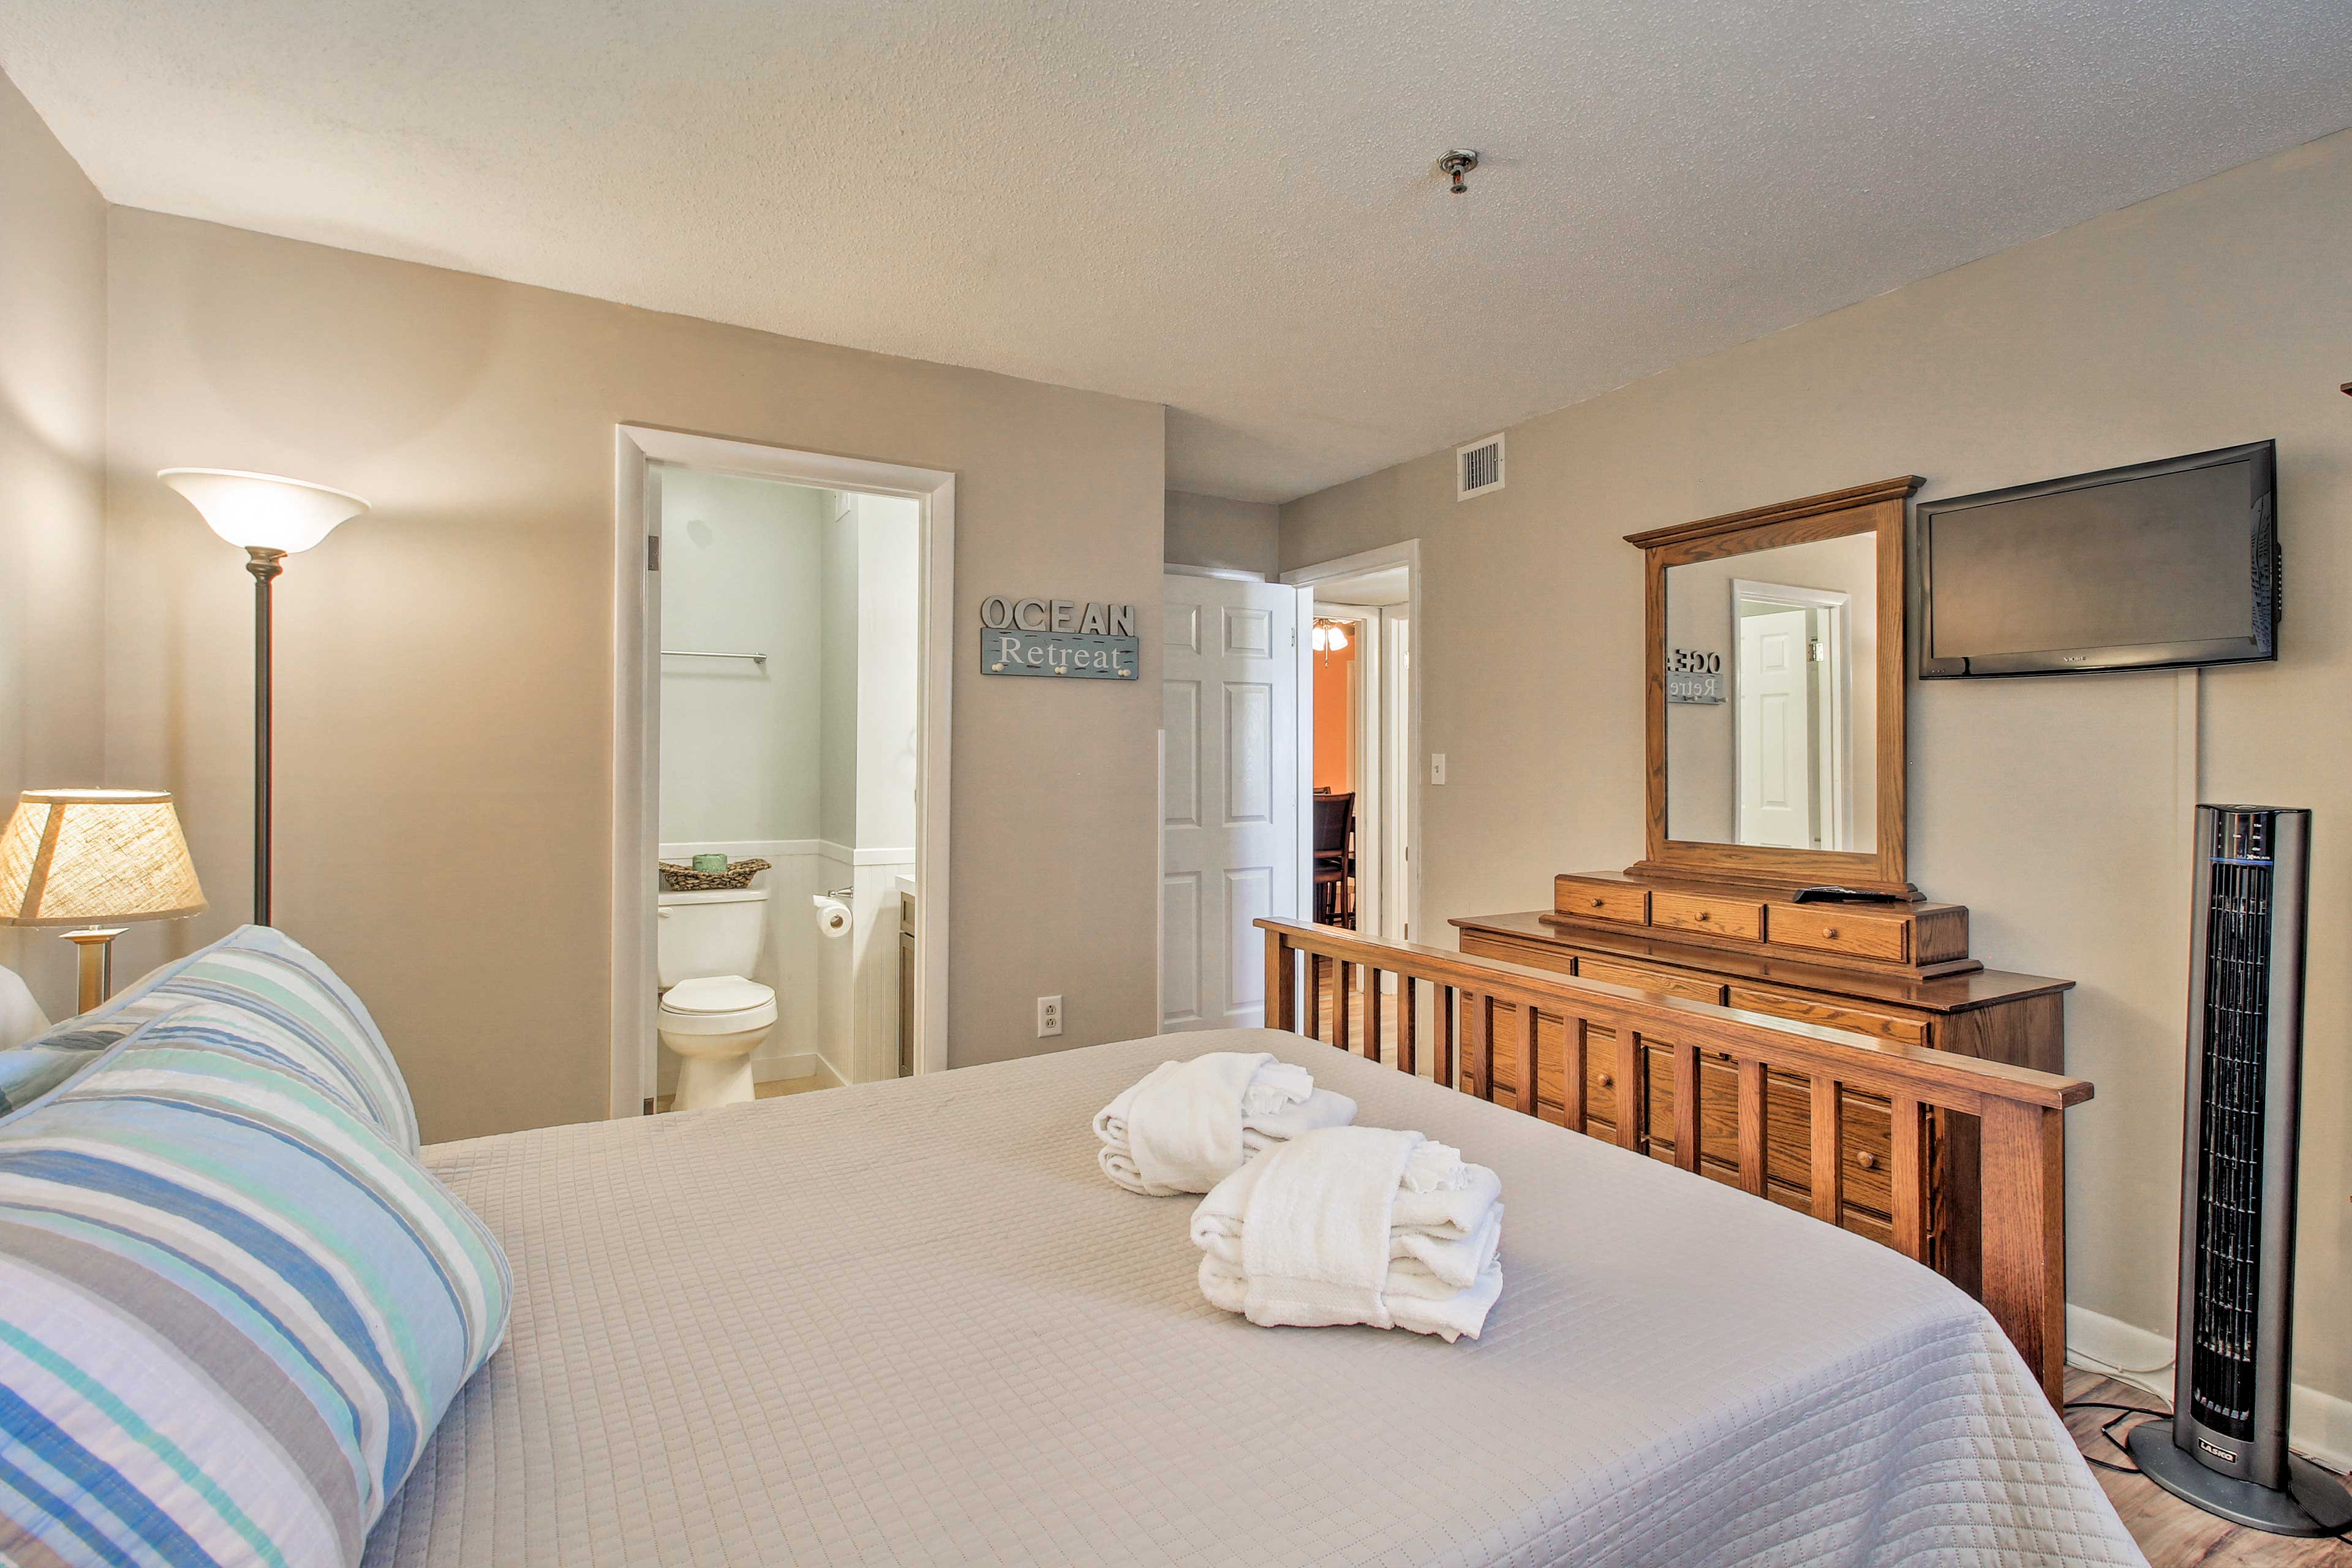 The master bedroom features a cozy queen-sized bed.